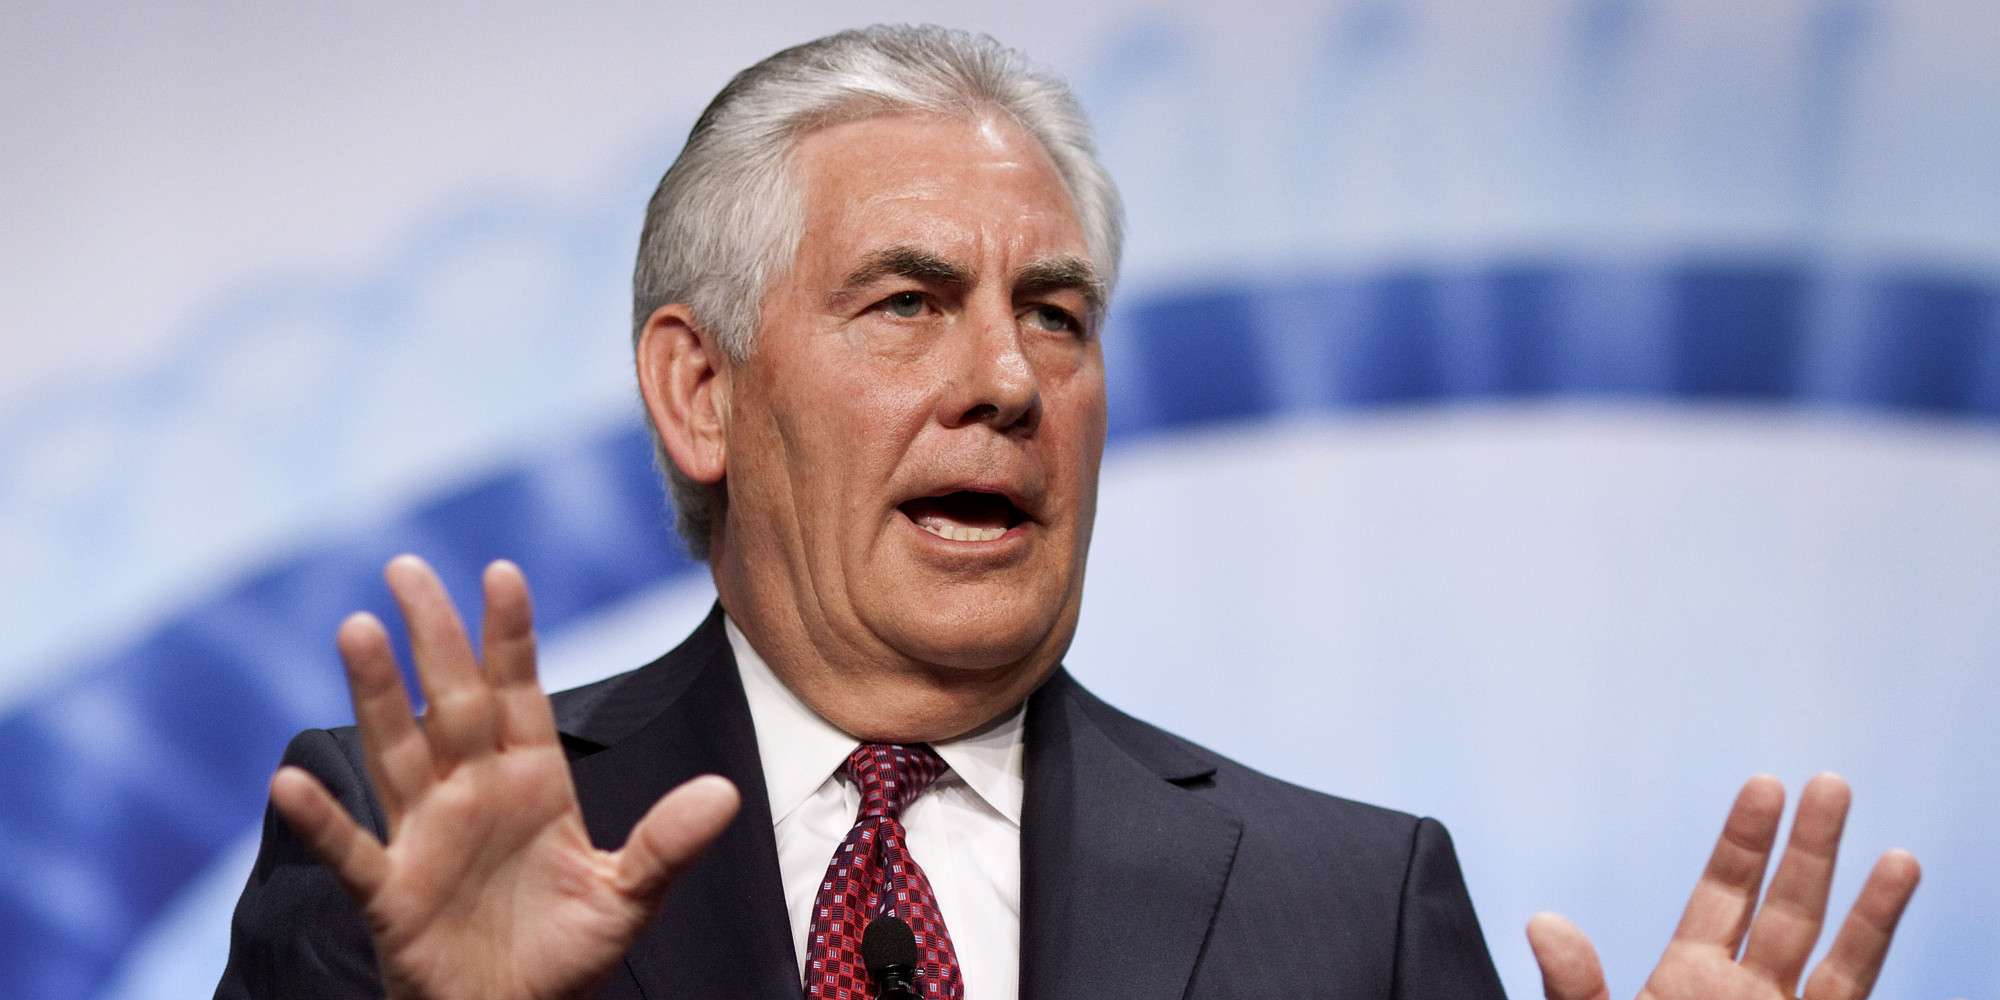 Trump expected to tap Exxon's Tillerson for State Dept